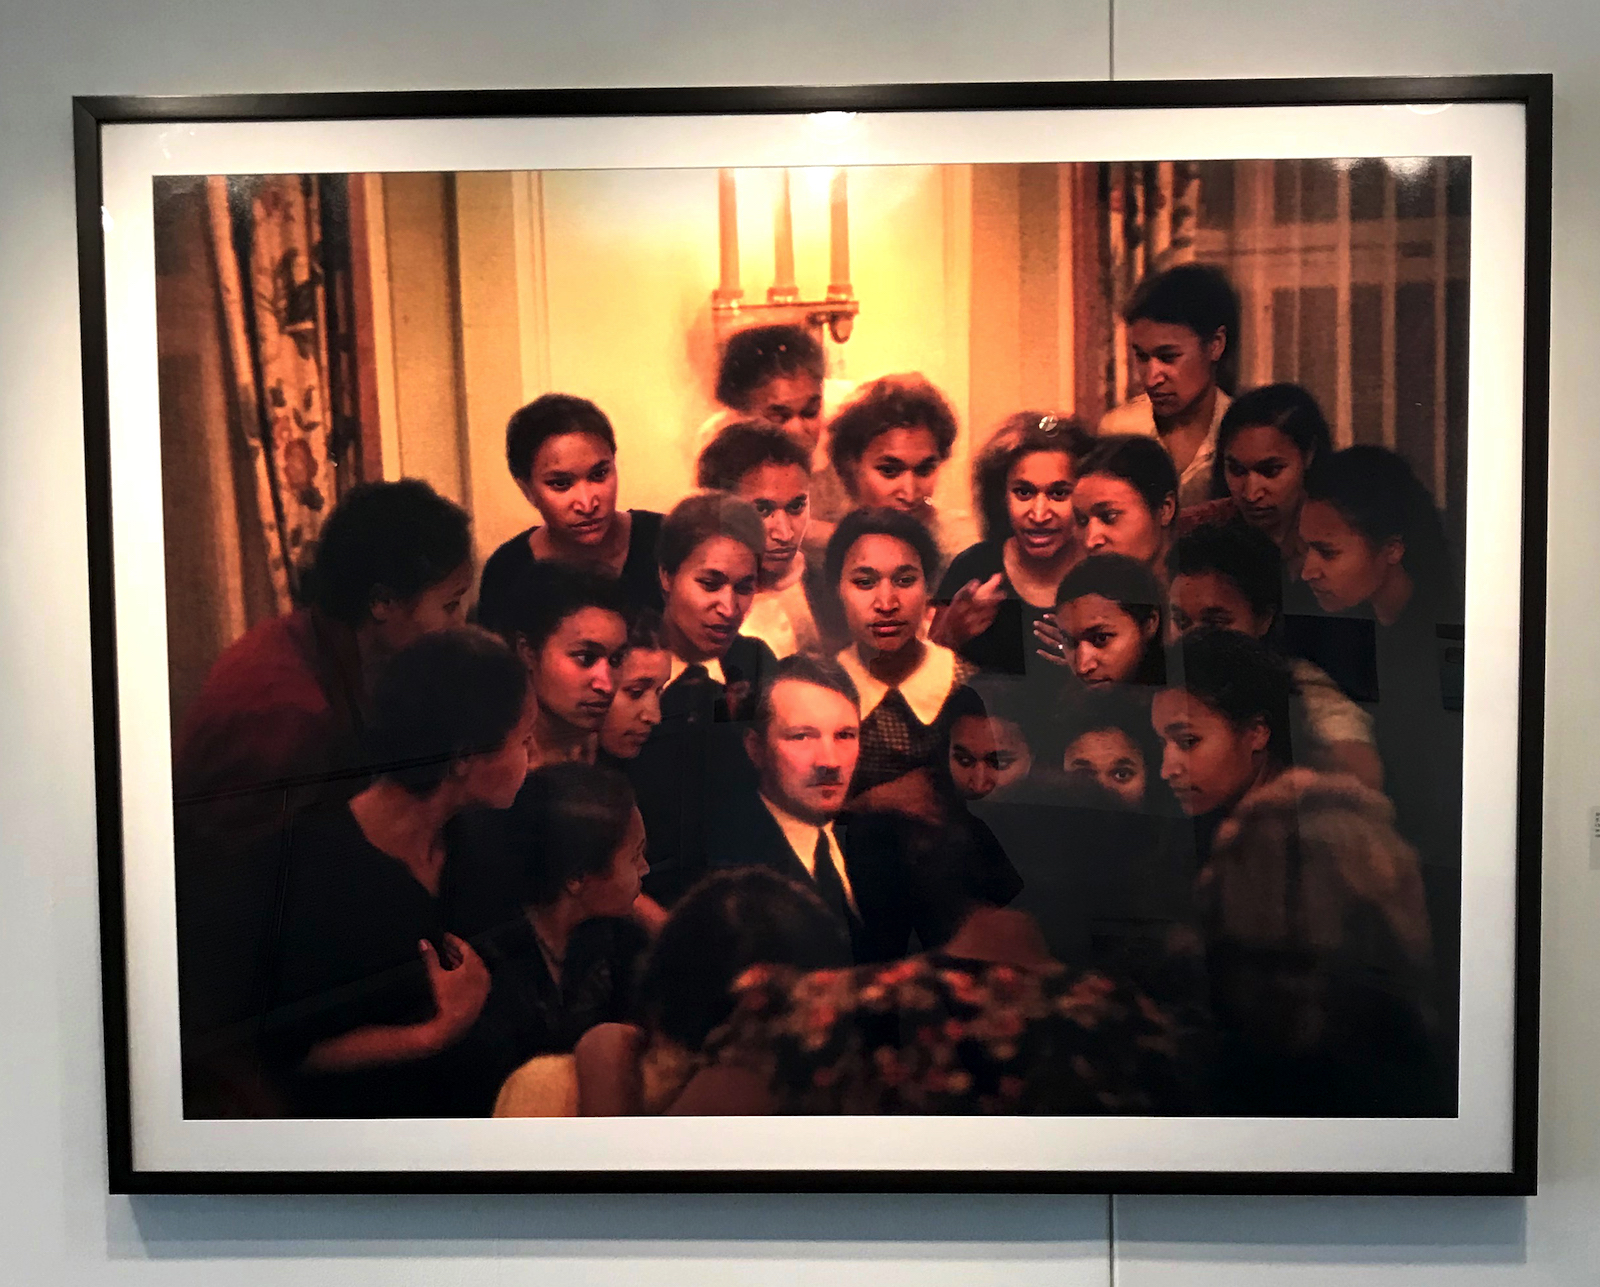 Tony Podesta Art >> Pulled In Part From Corcoran Legacy Collection Exhibit At